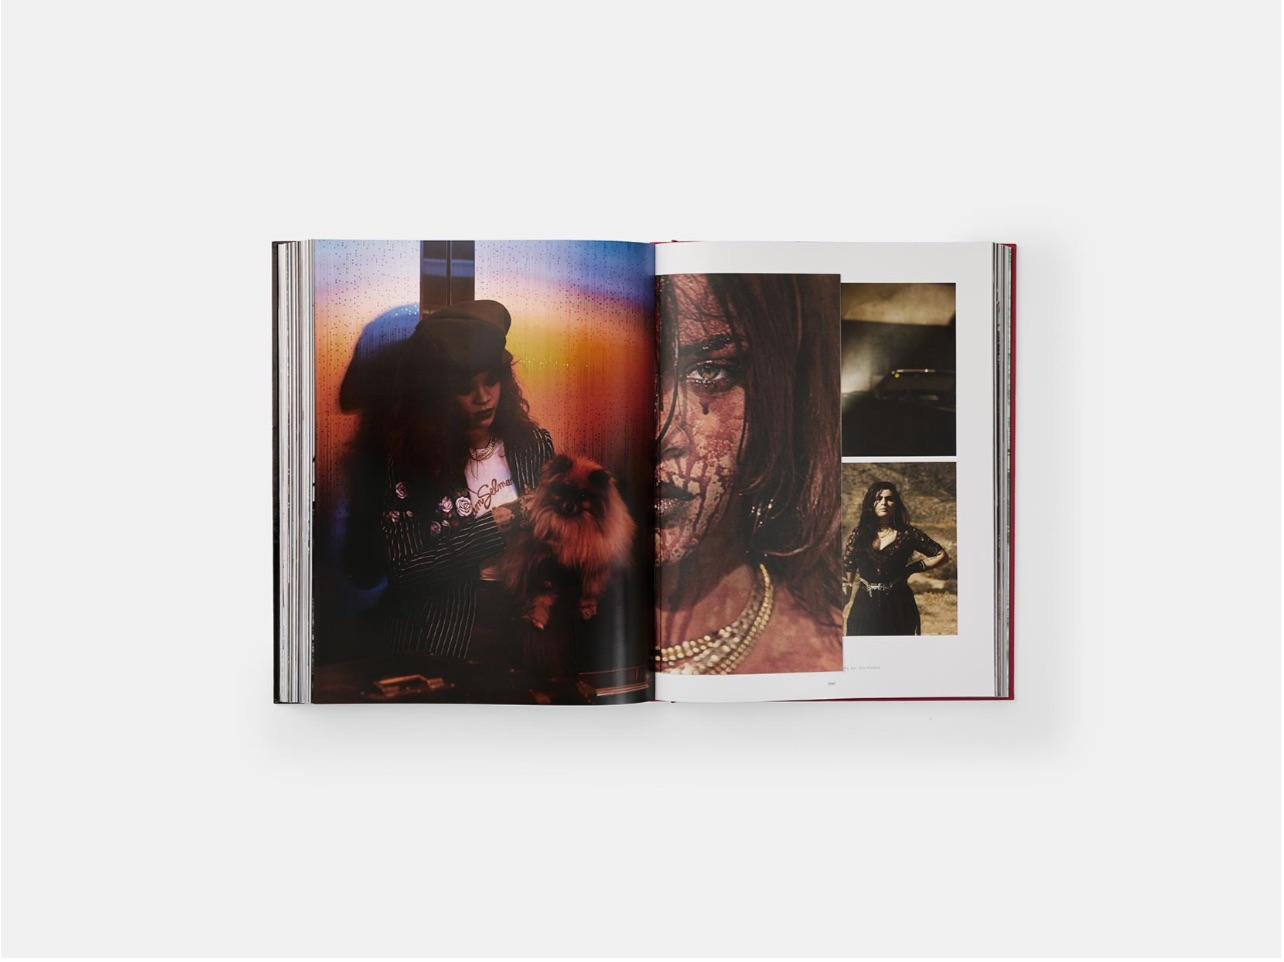 From Rihanna copyright Phaidon 2019